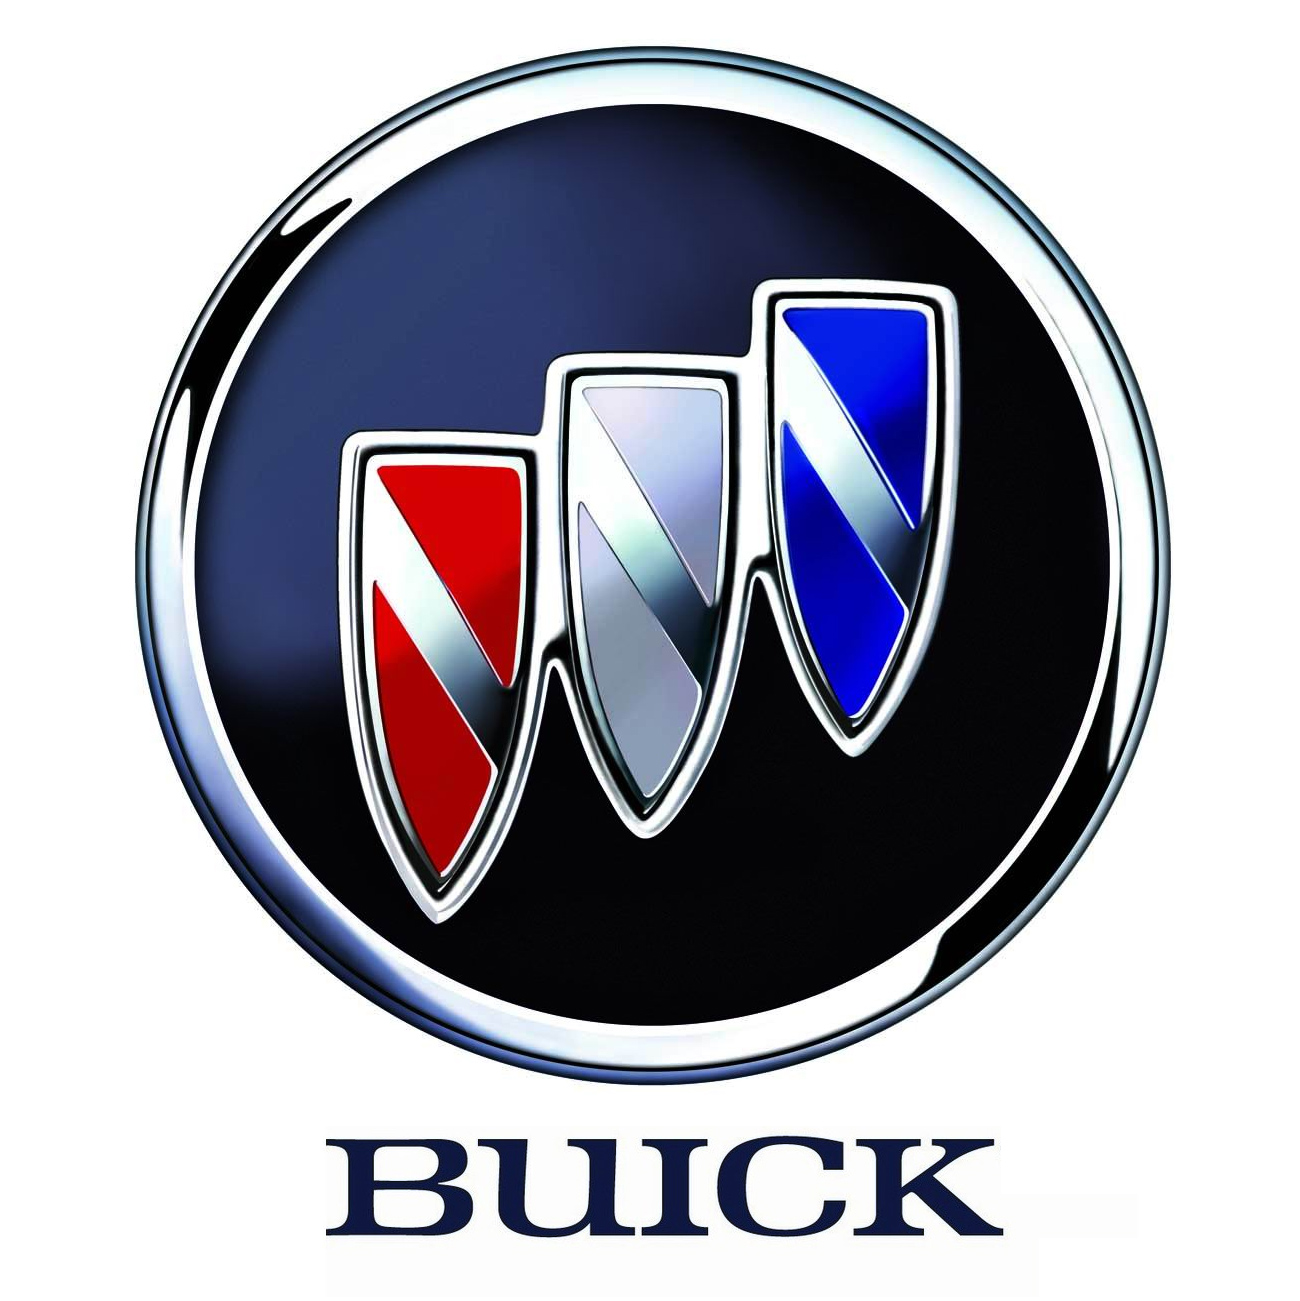 Buick Logo, Buick Car Symbol Meaning and History.